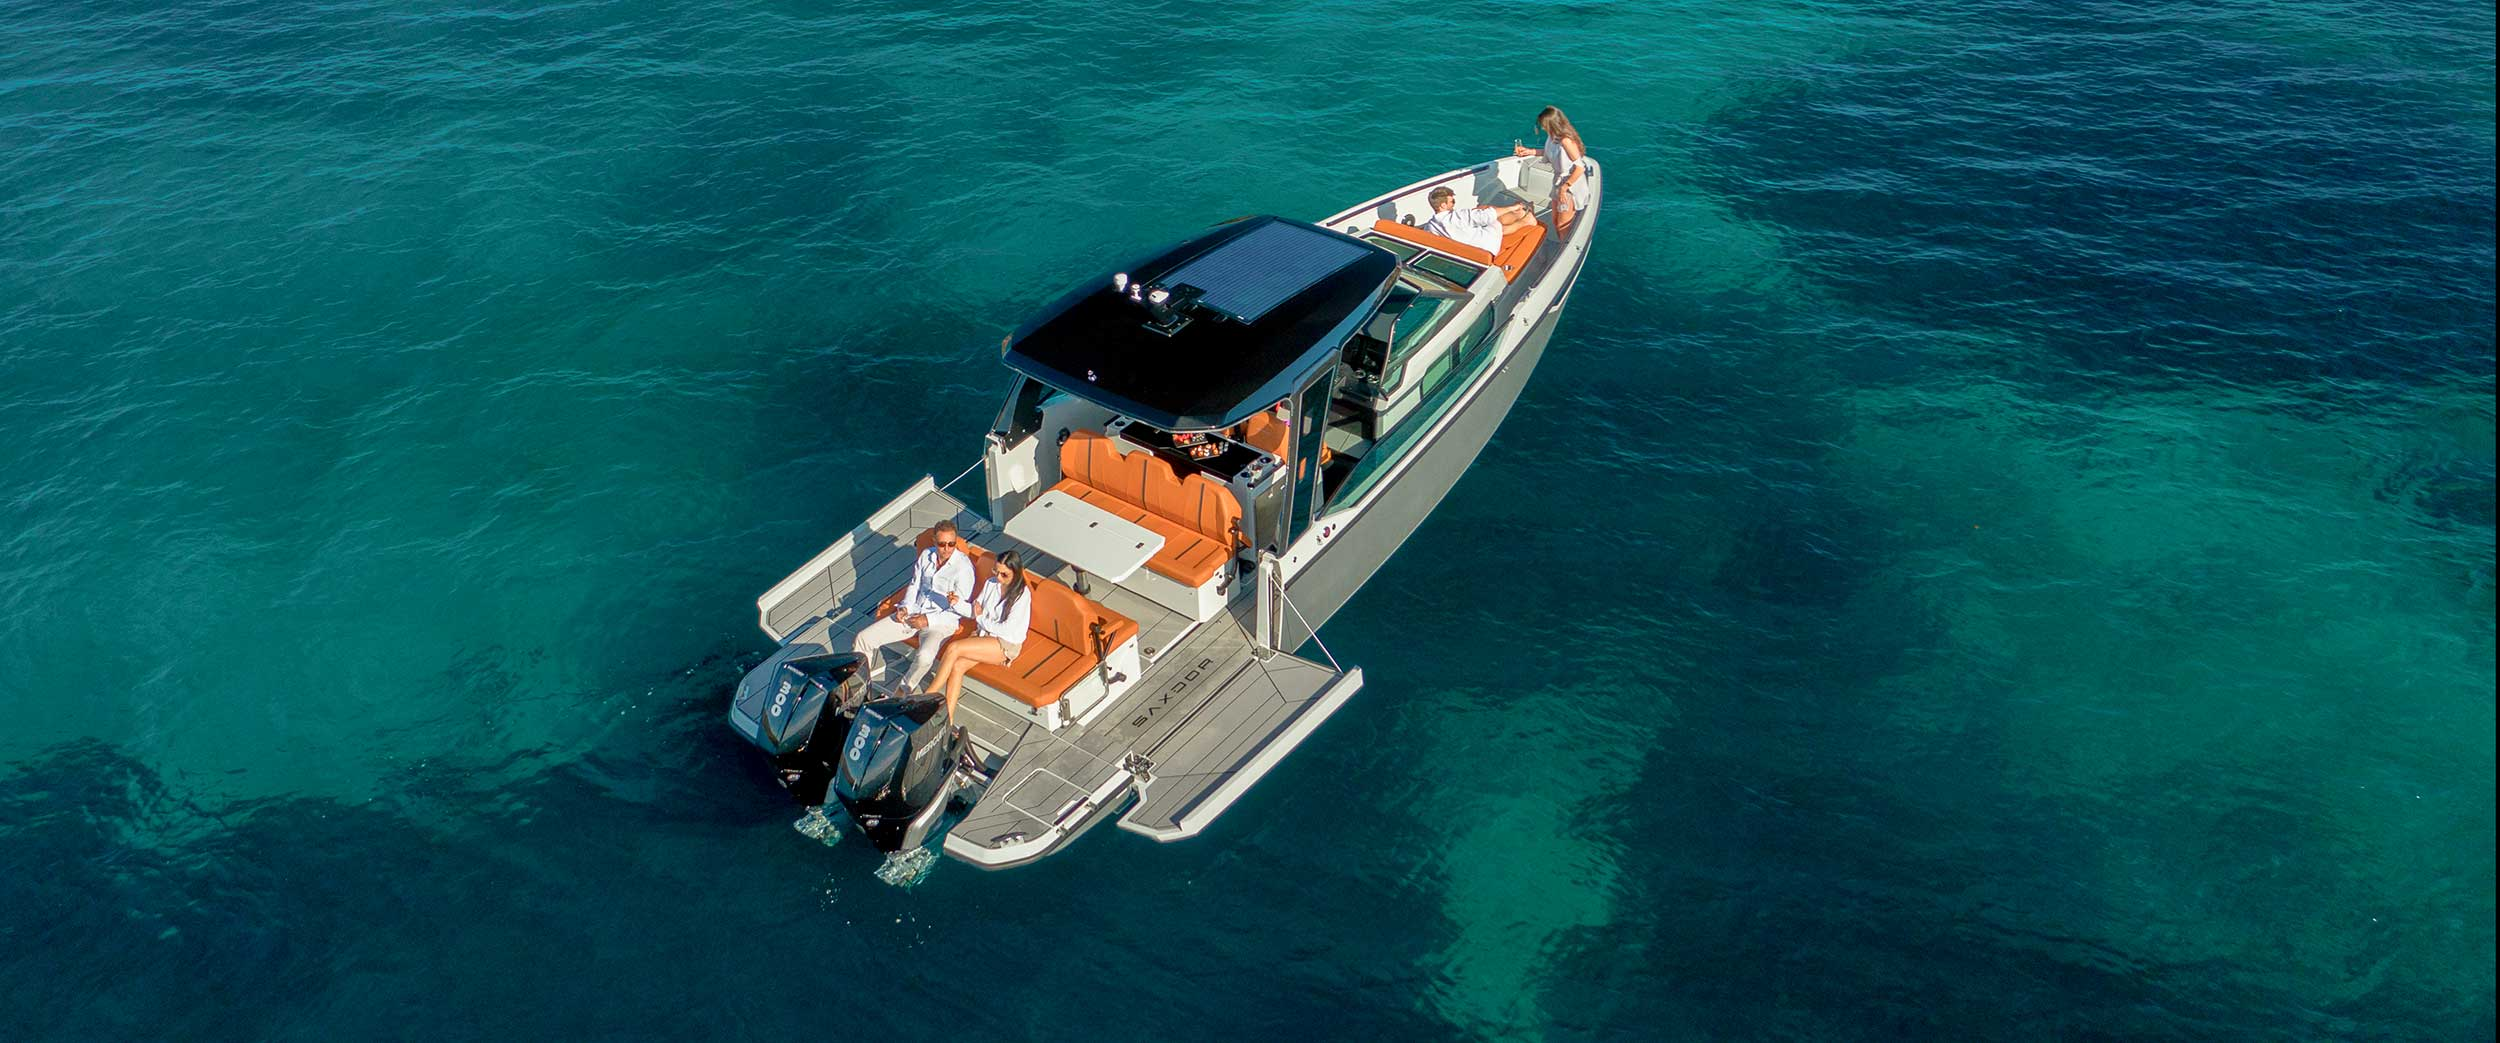 Saxdor Yachts -  Front page slide 2 – S320 pics